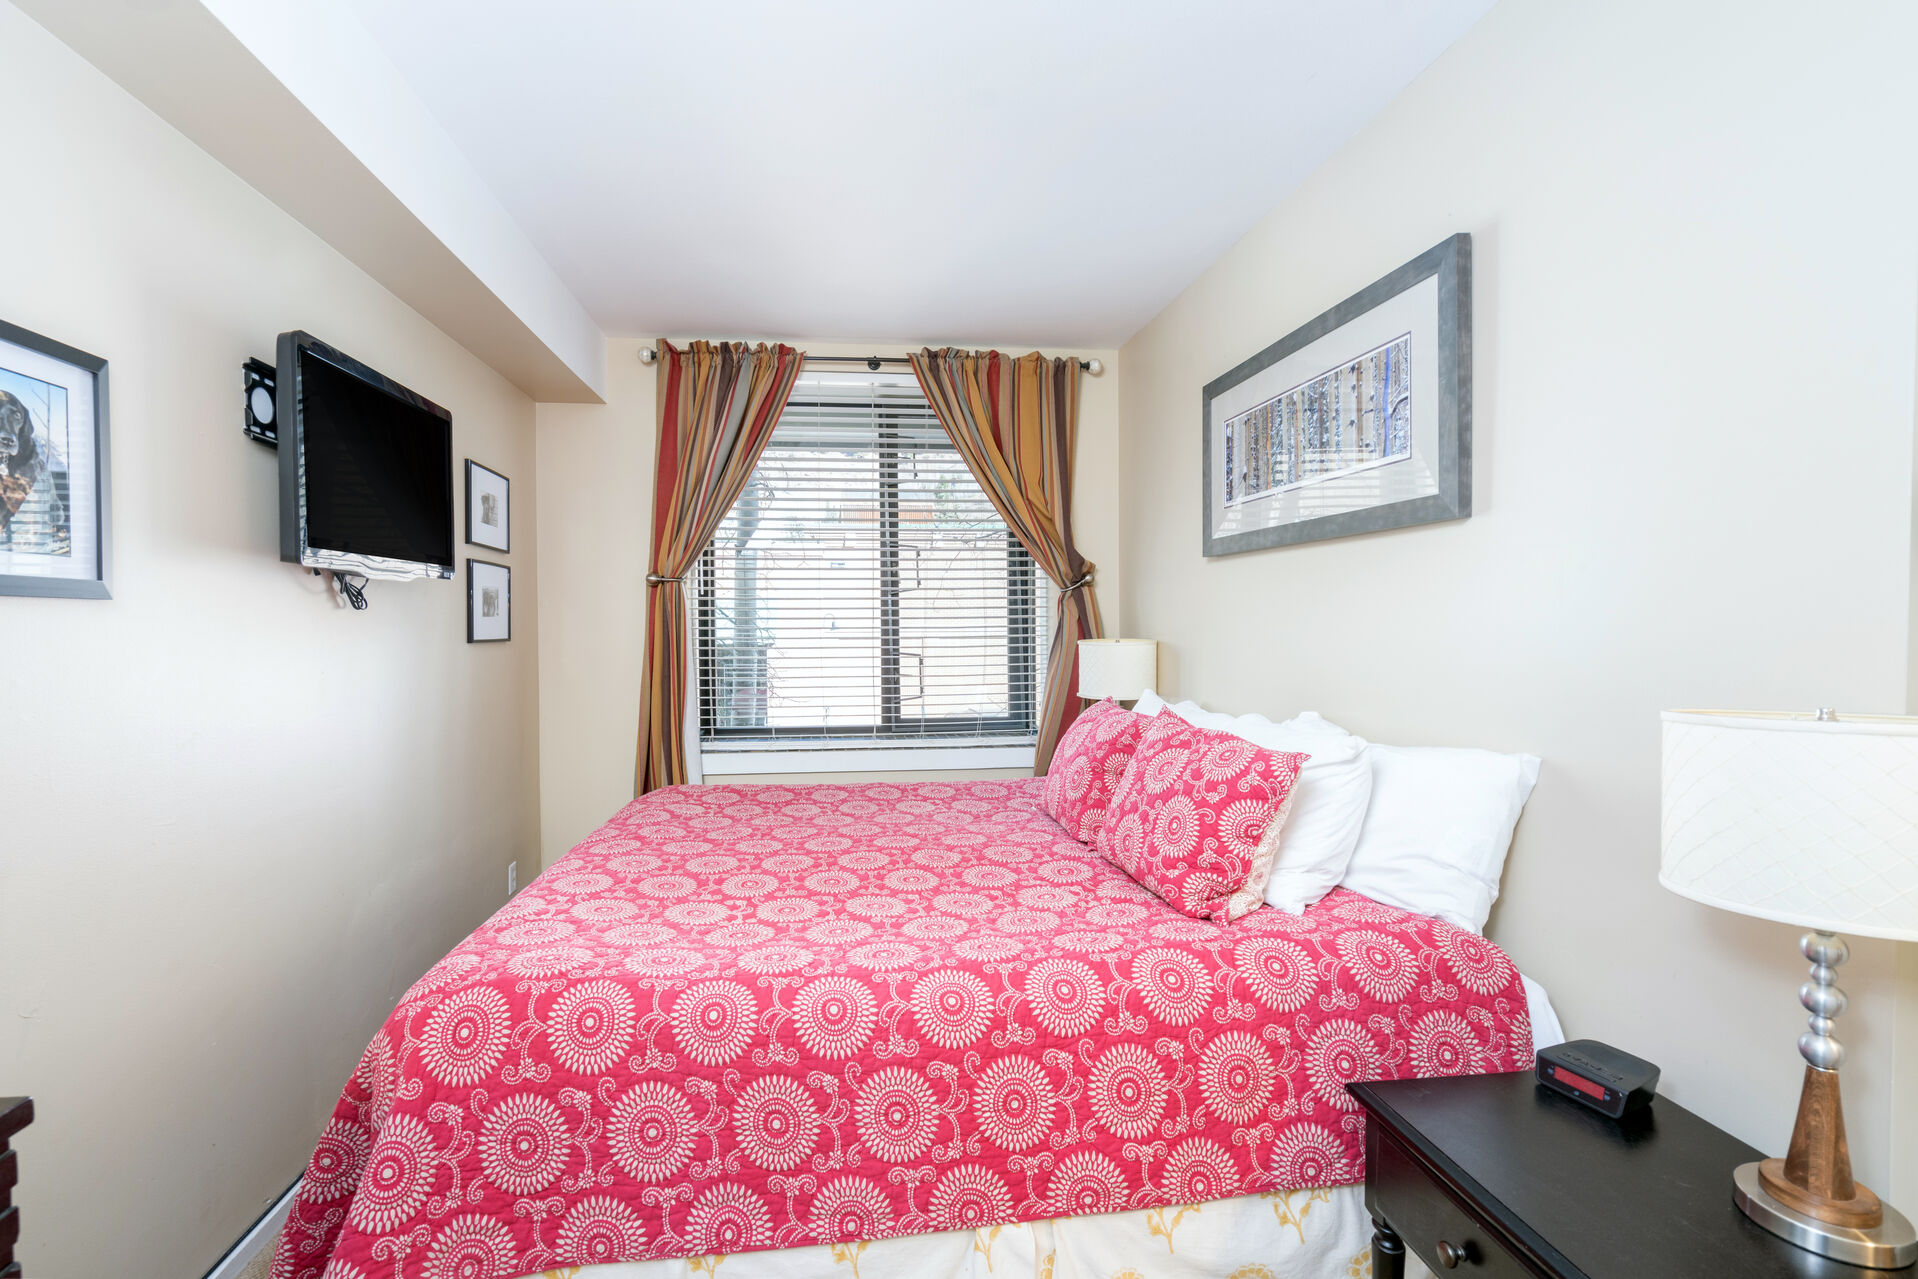 Bedroom with a king-size bed and a tv